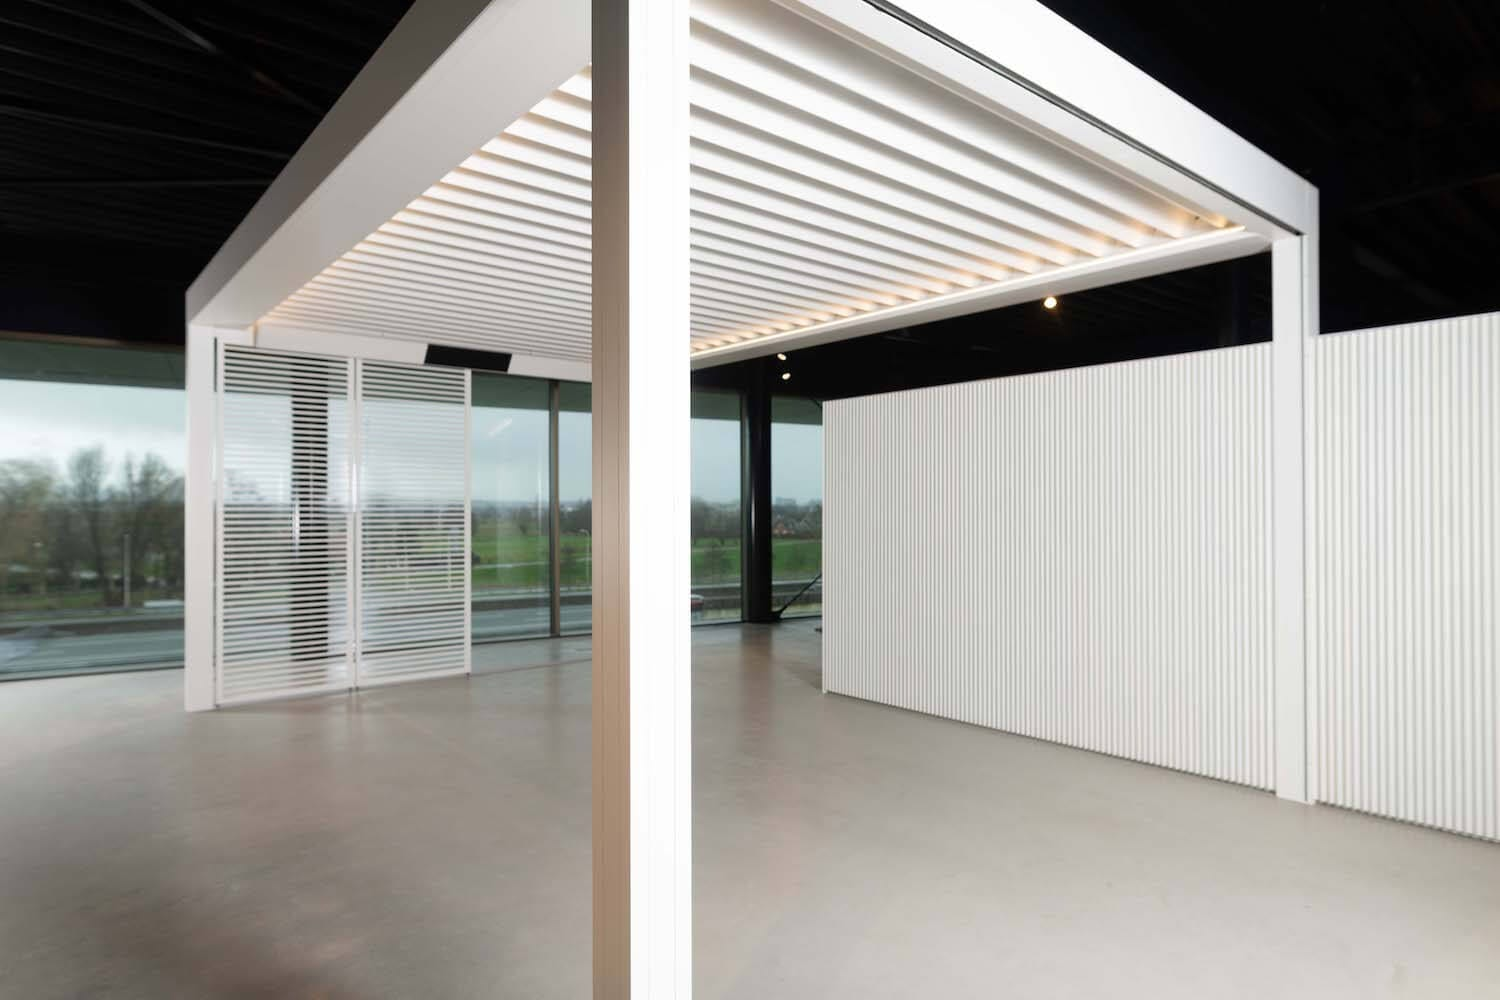 Showroom terrasoverkappingen tuinkamers Ede